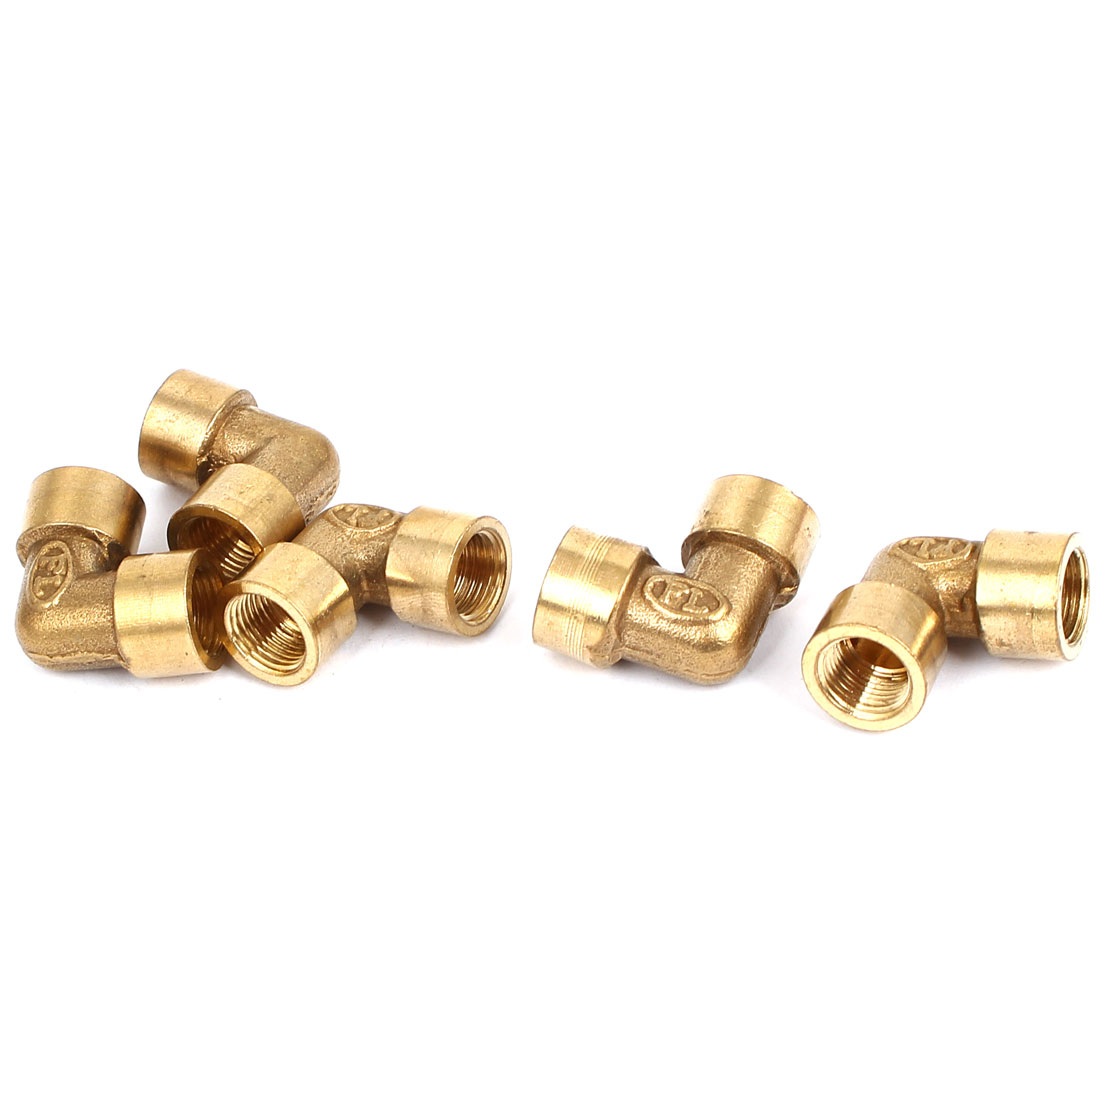 5 Pcs Water Hose Pipe Tube Fitting Coupler Connector 1/8PT Female Thread